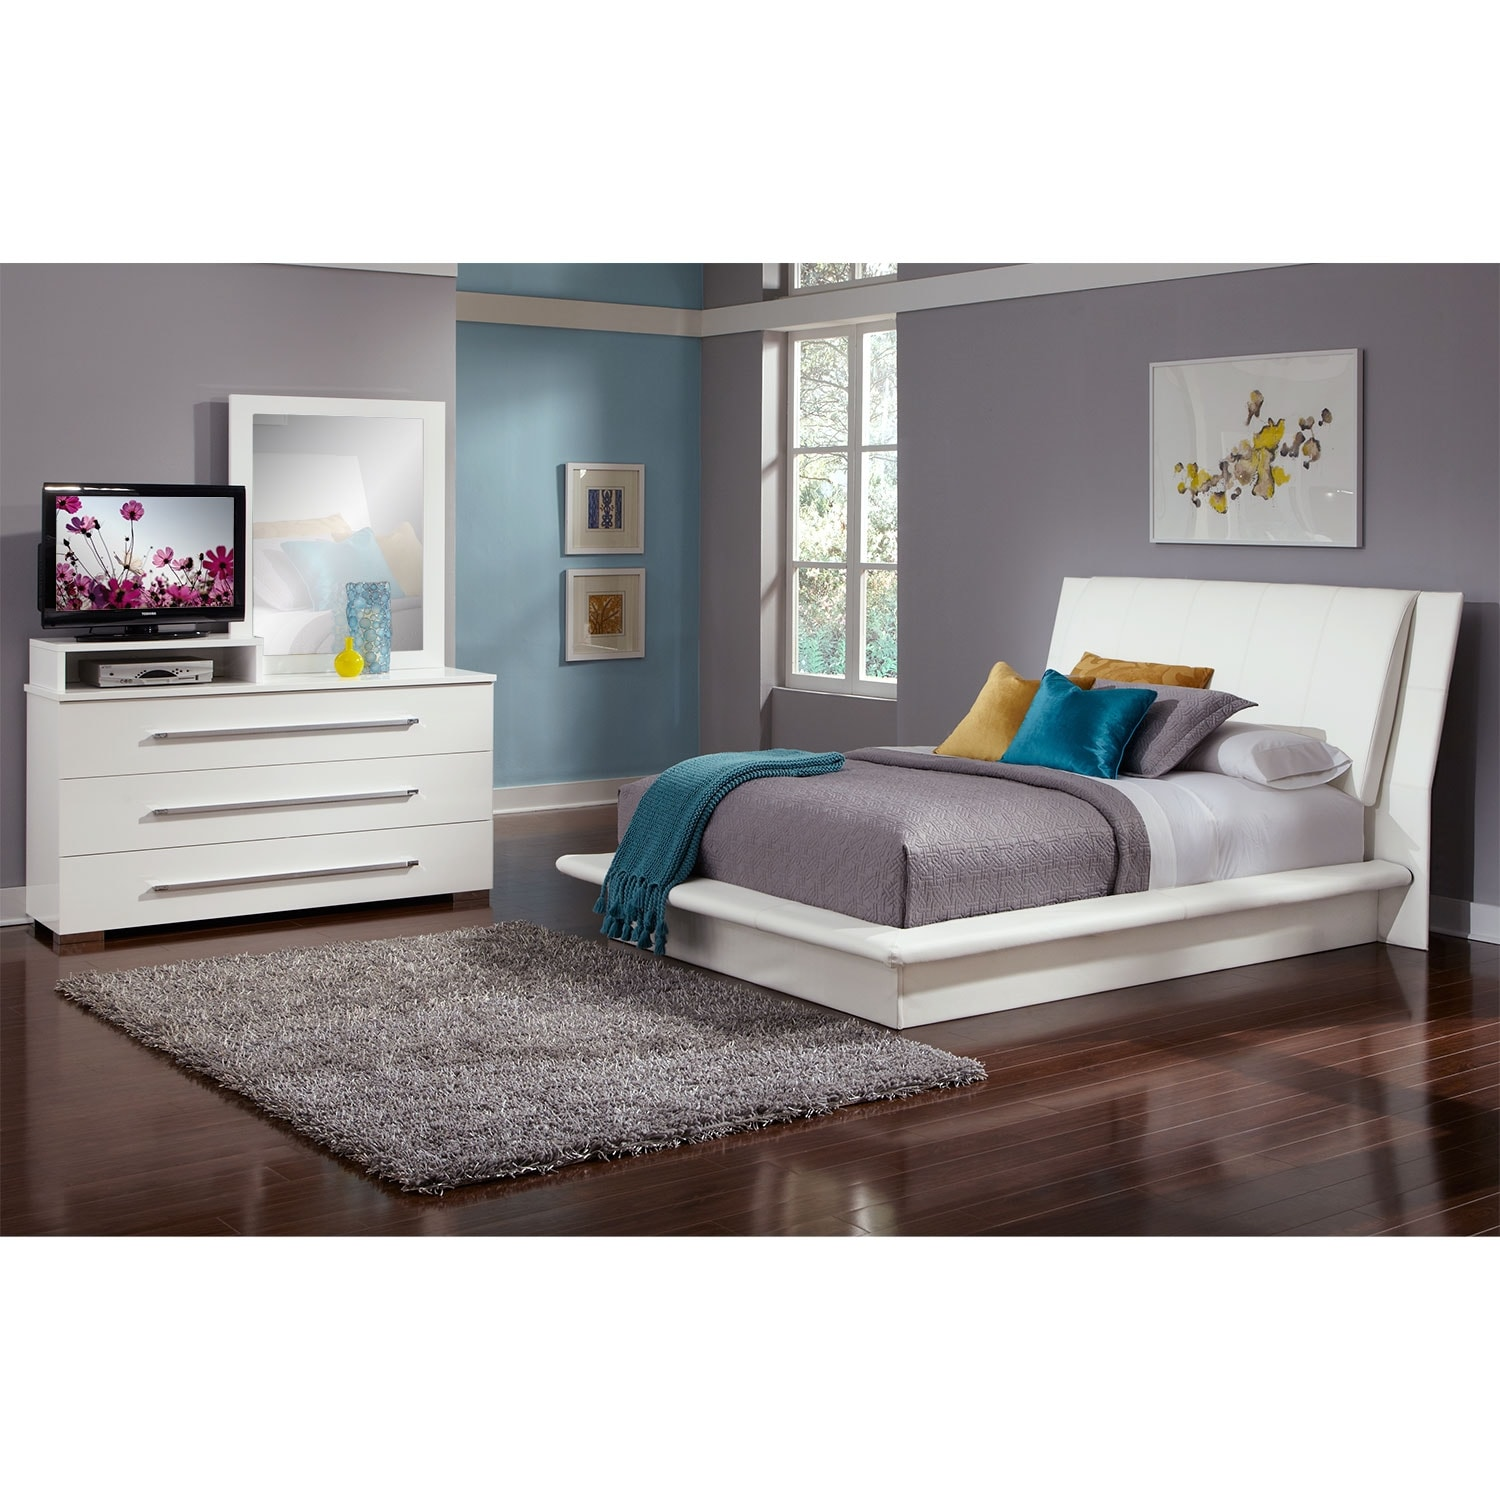 Dimora 5 Piece Queen Upholstered Bedroom Set With Media Dresser White Val